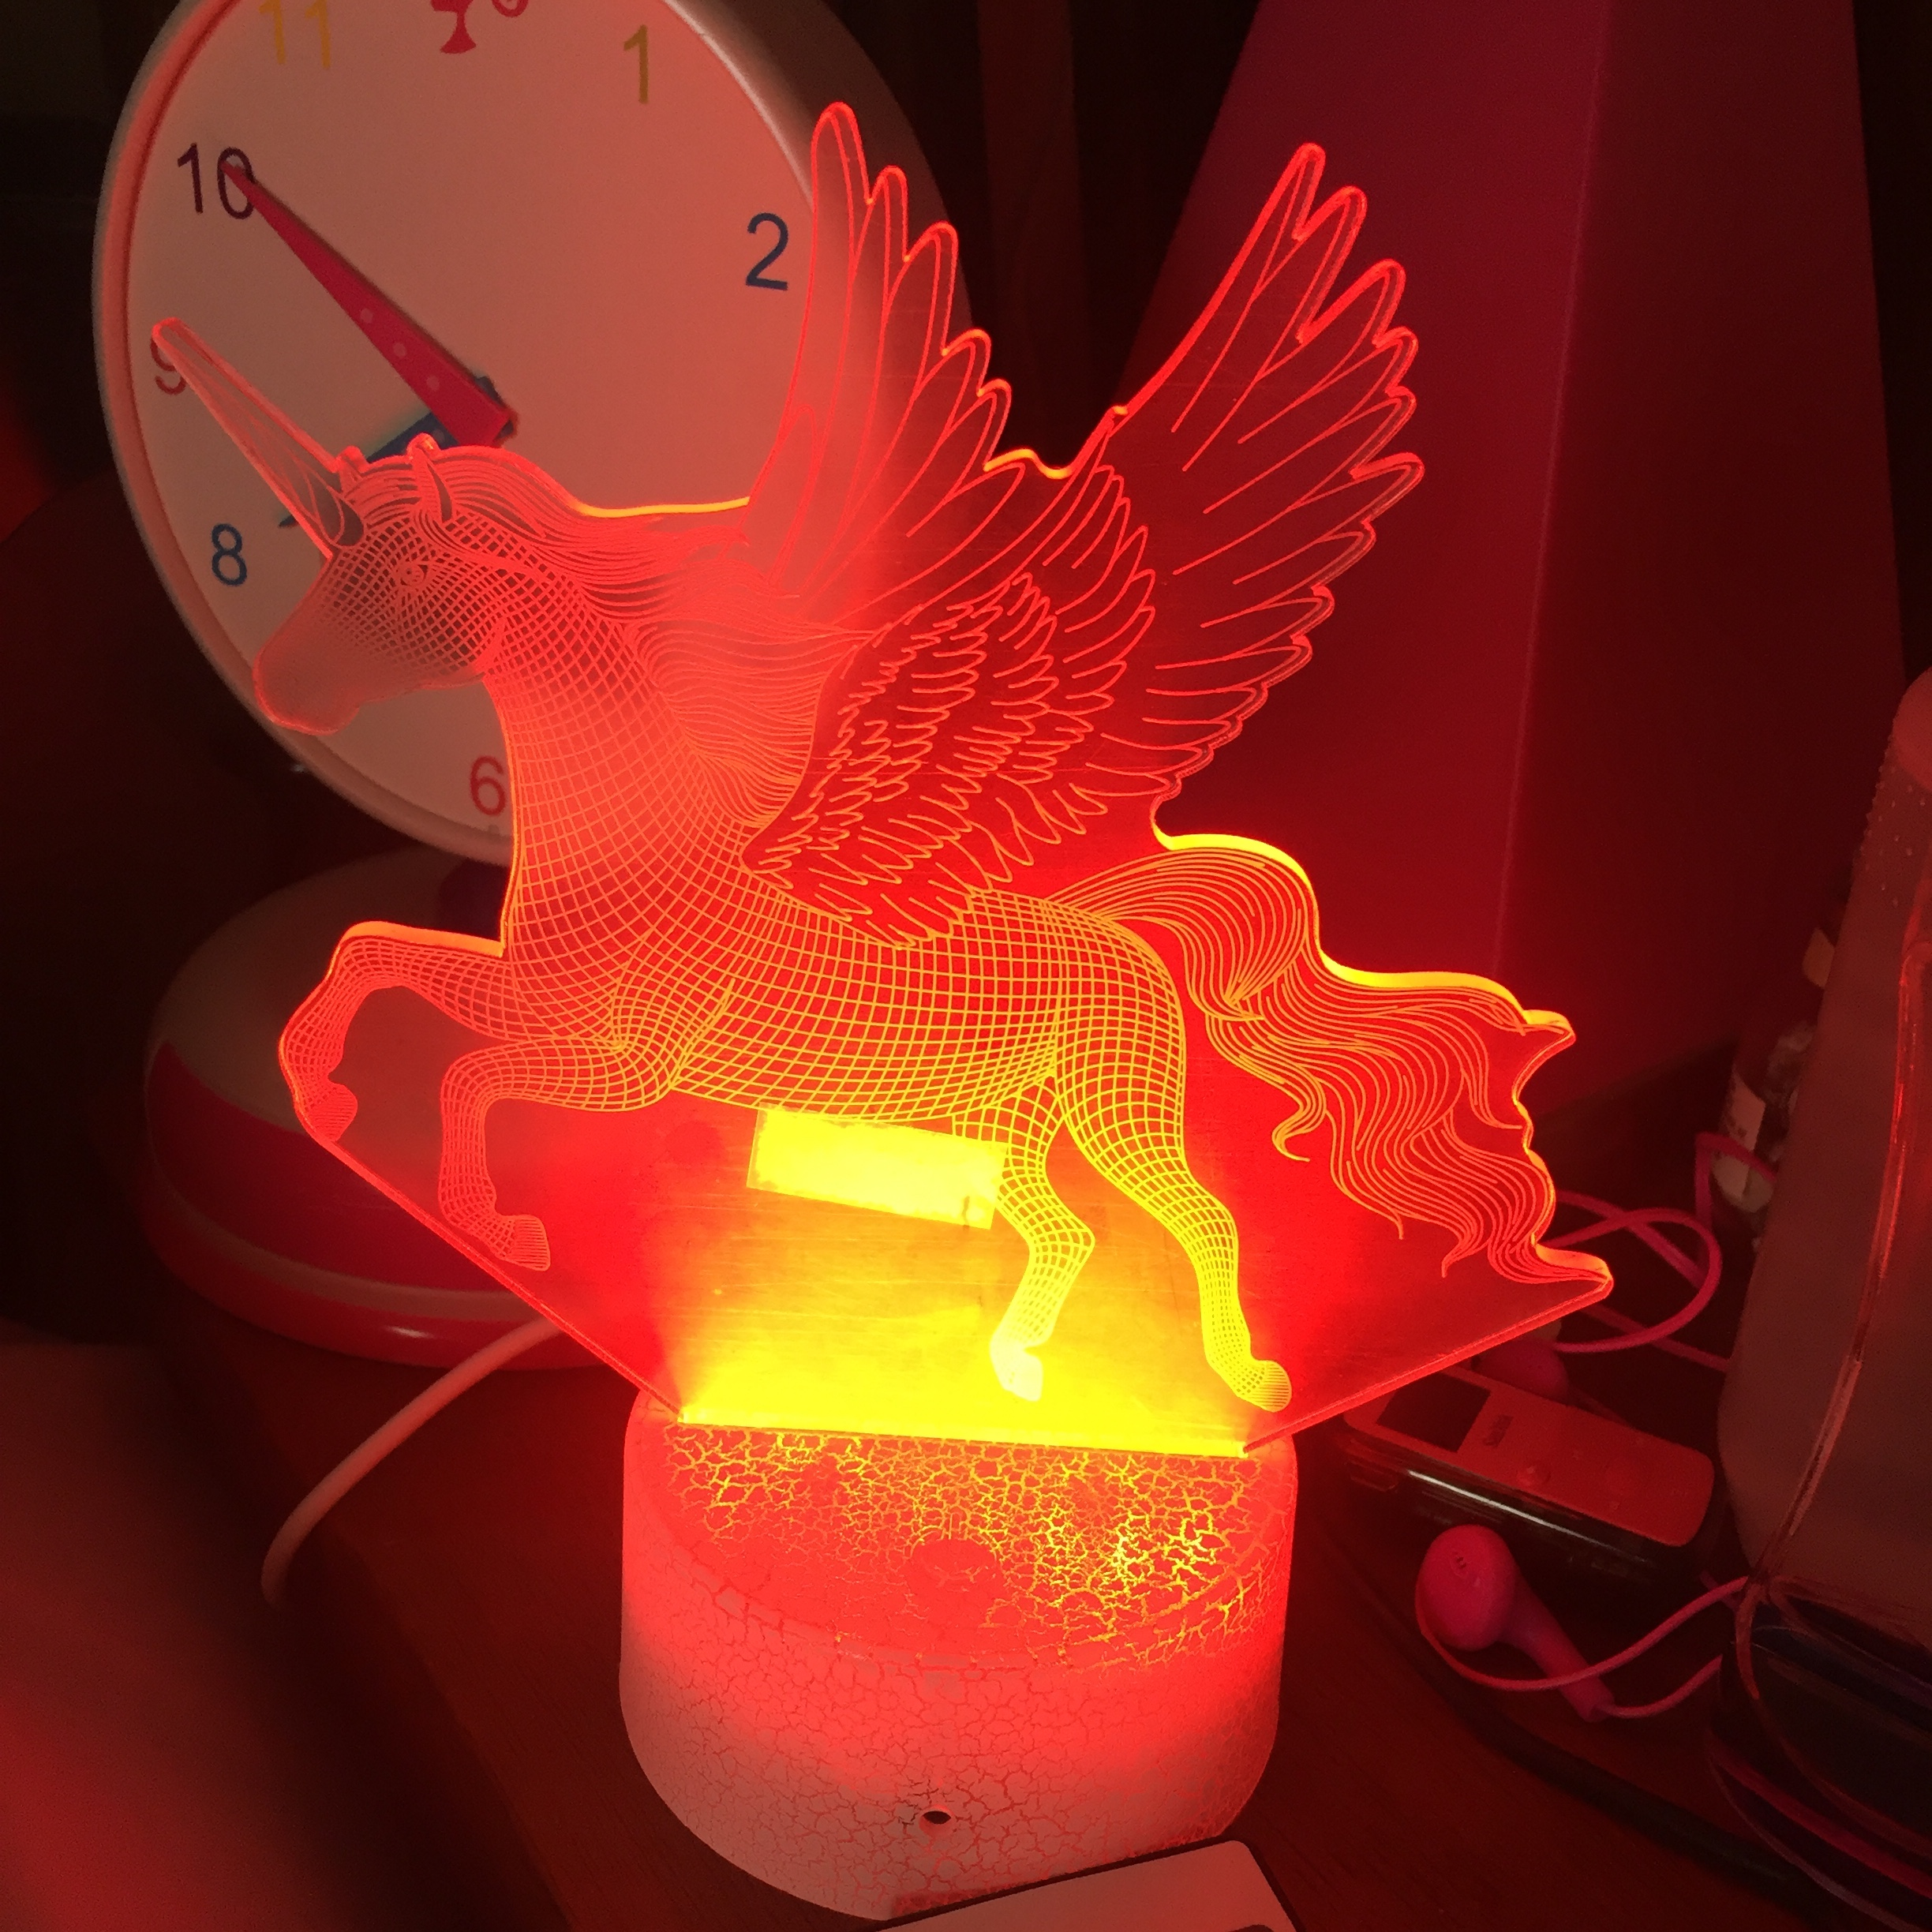 Unicorn Night Lamp Light for kids 3D changes colors shown in red fading to orange and yellow